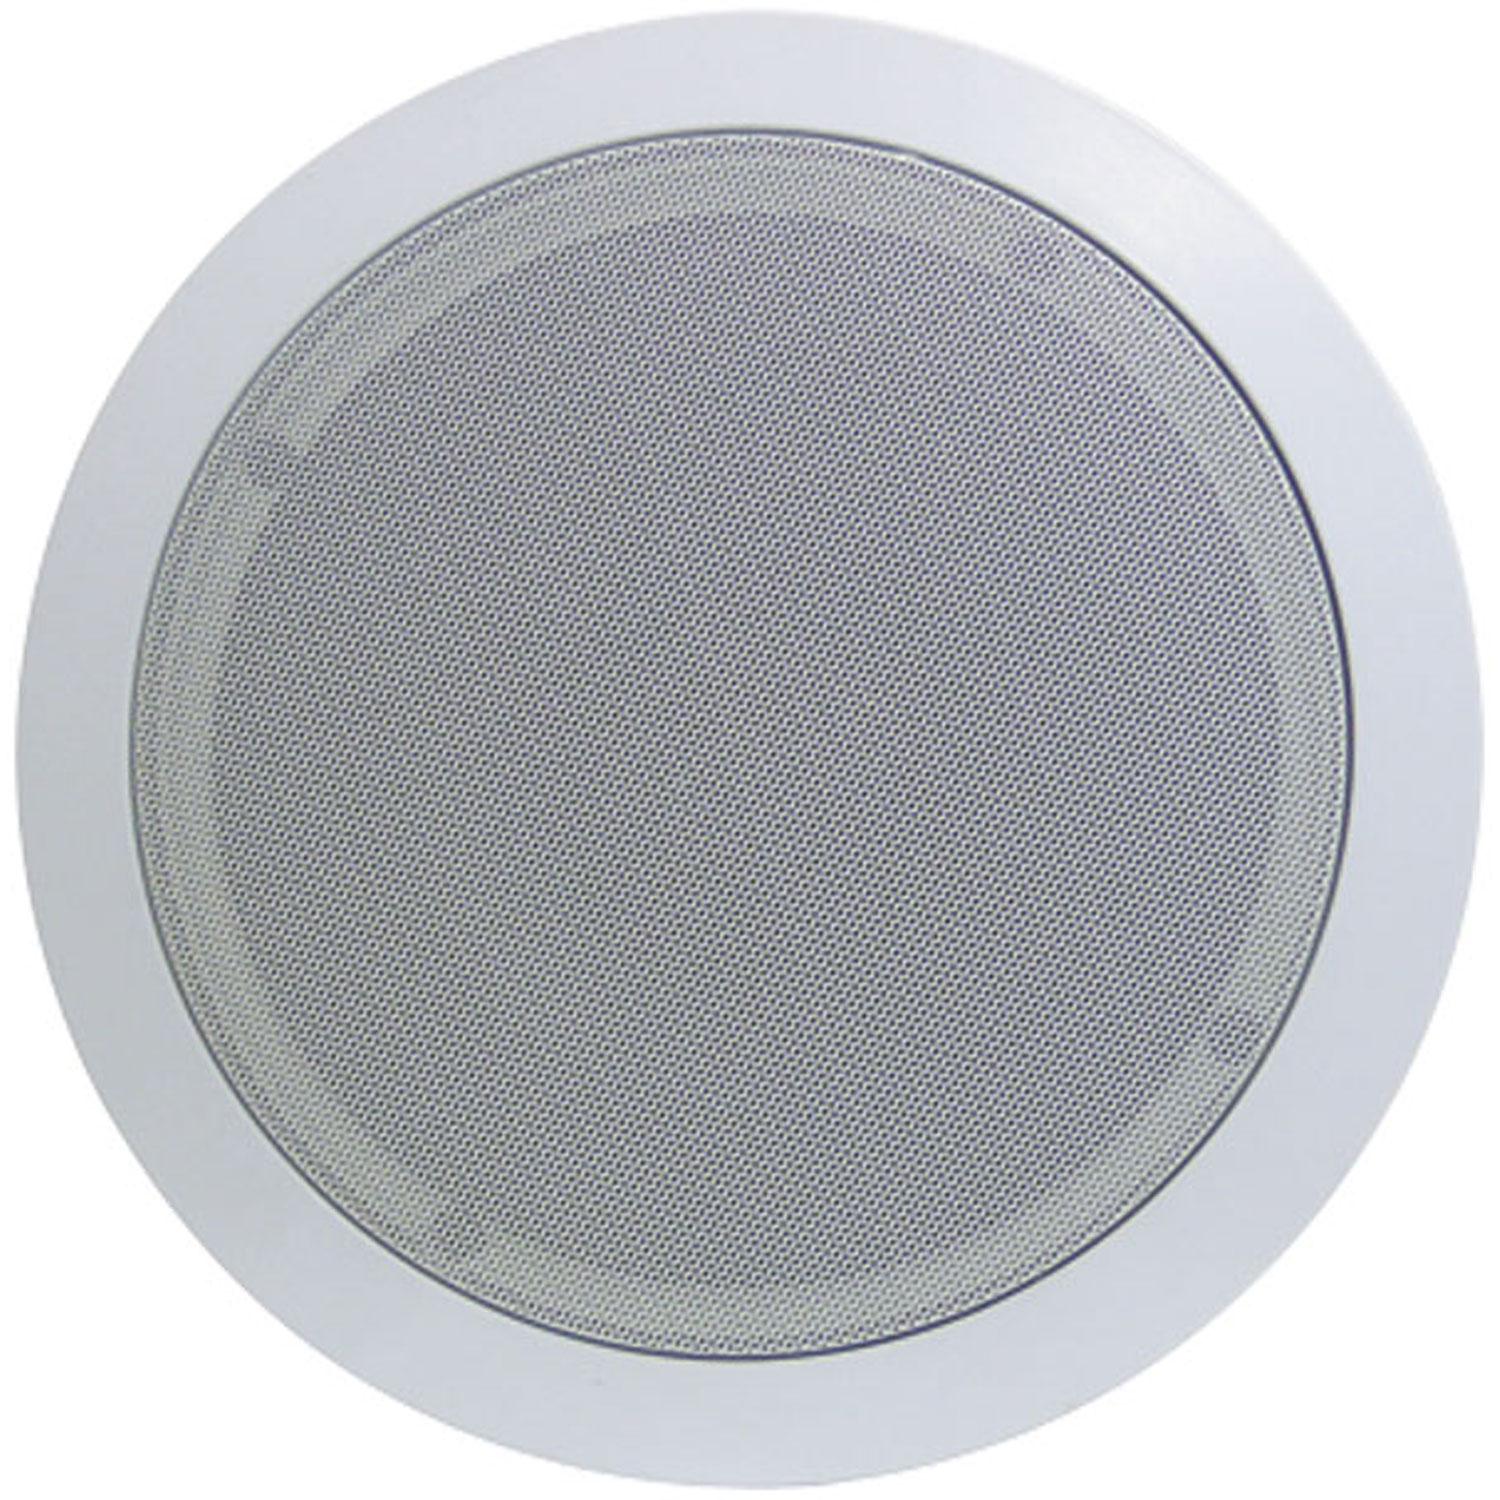 "Pyle 5.25"" Two-Way In-Ceiling Speaker System (Pair) by Pyle"